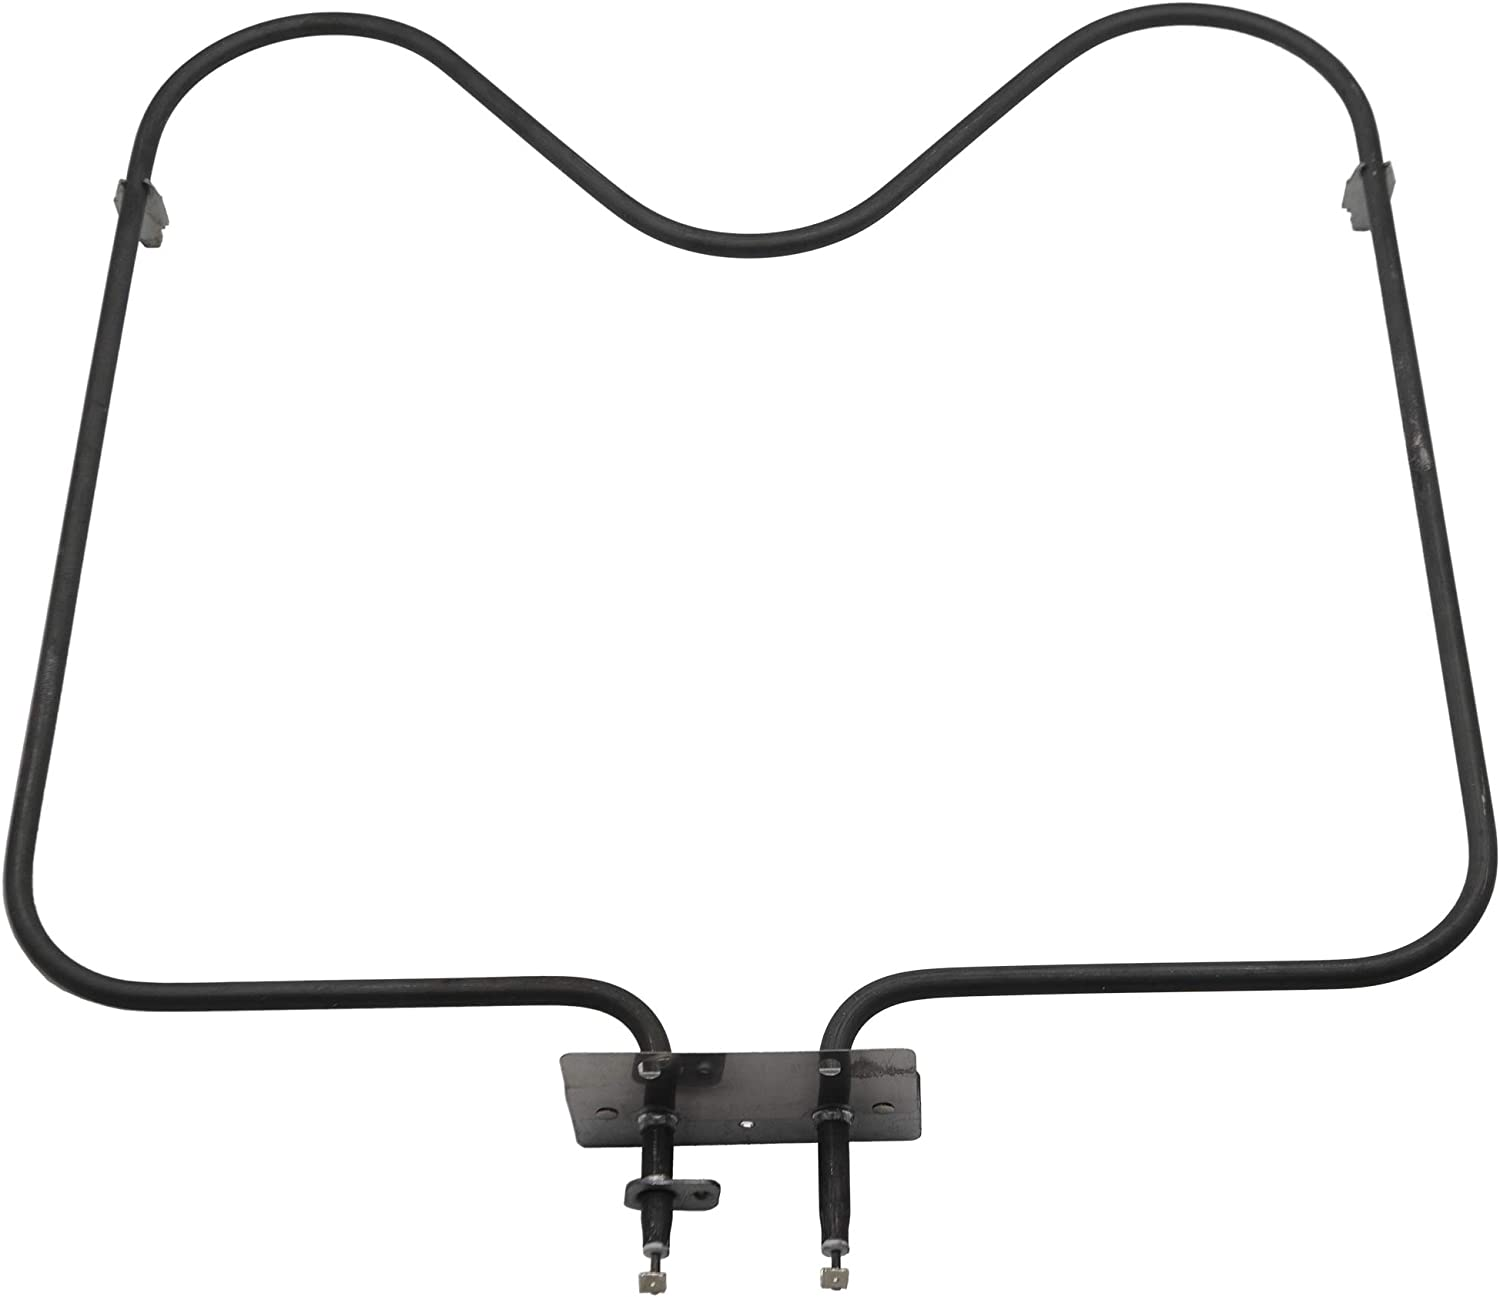 Supplying Demand Y04000066 Oven Bake Element Compatible With Whirlpool